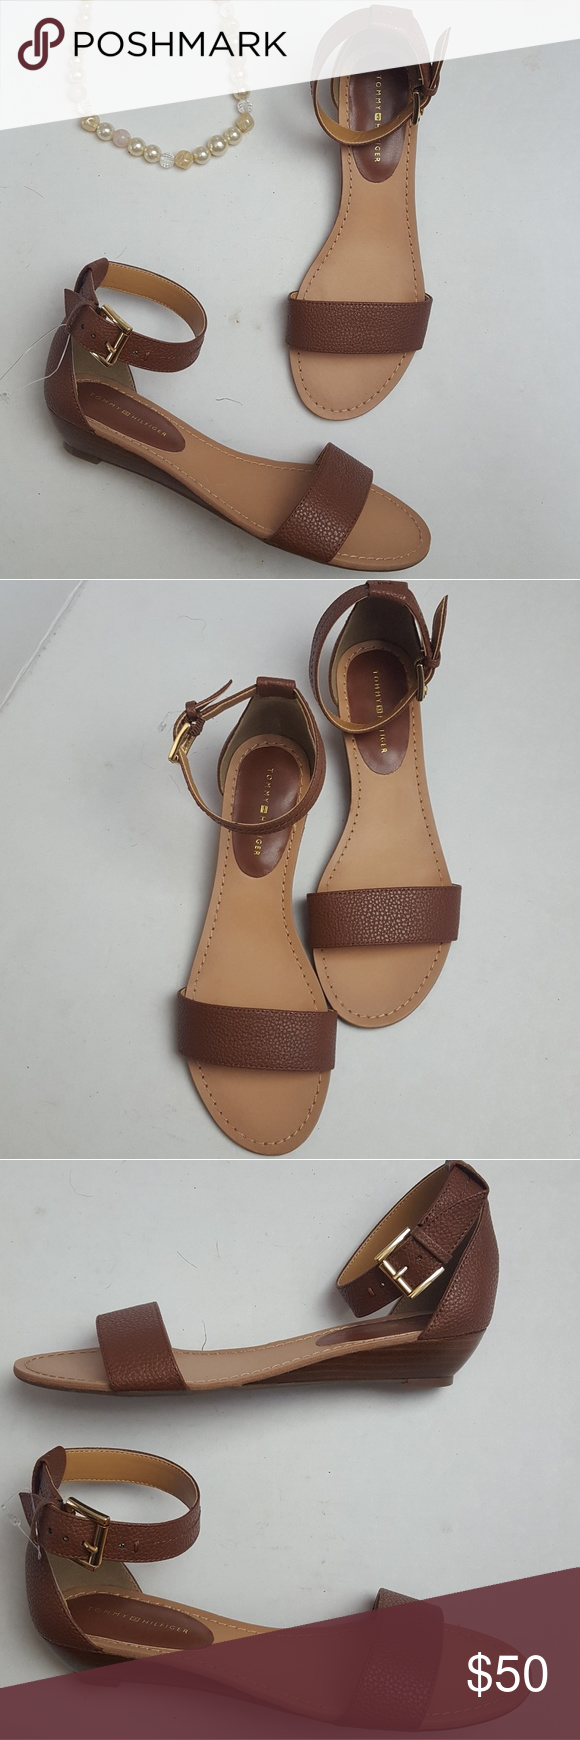 Tommy Hilfiger Sandal Wedges Size 65 Boutique My Posh Picks Skyway New Without Tags Brown